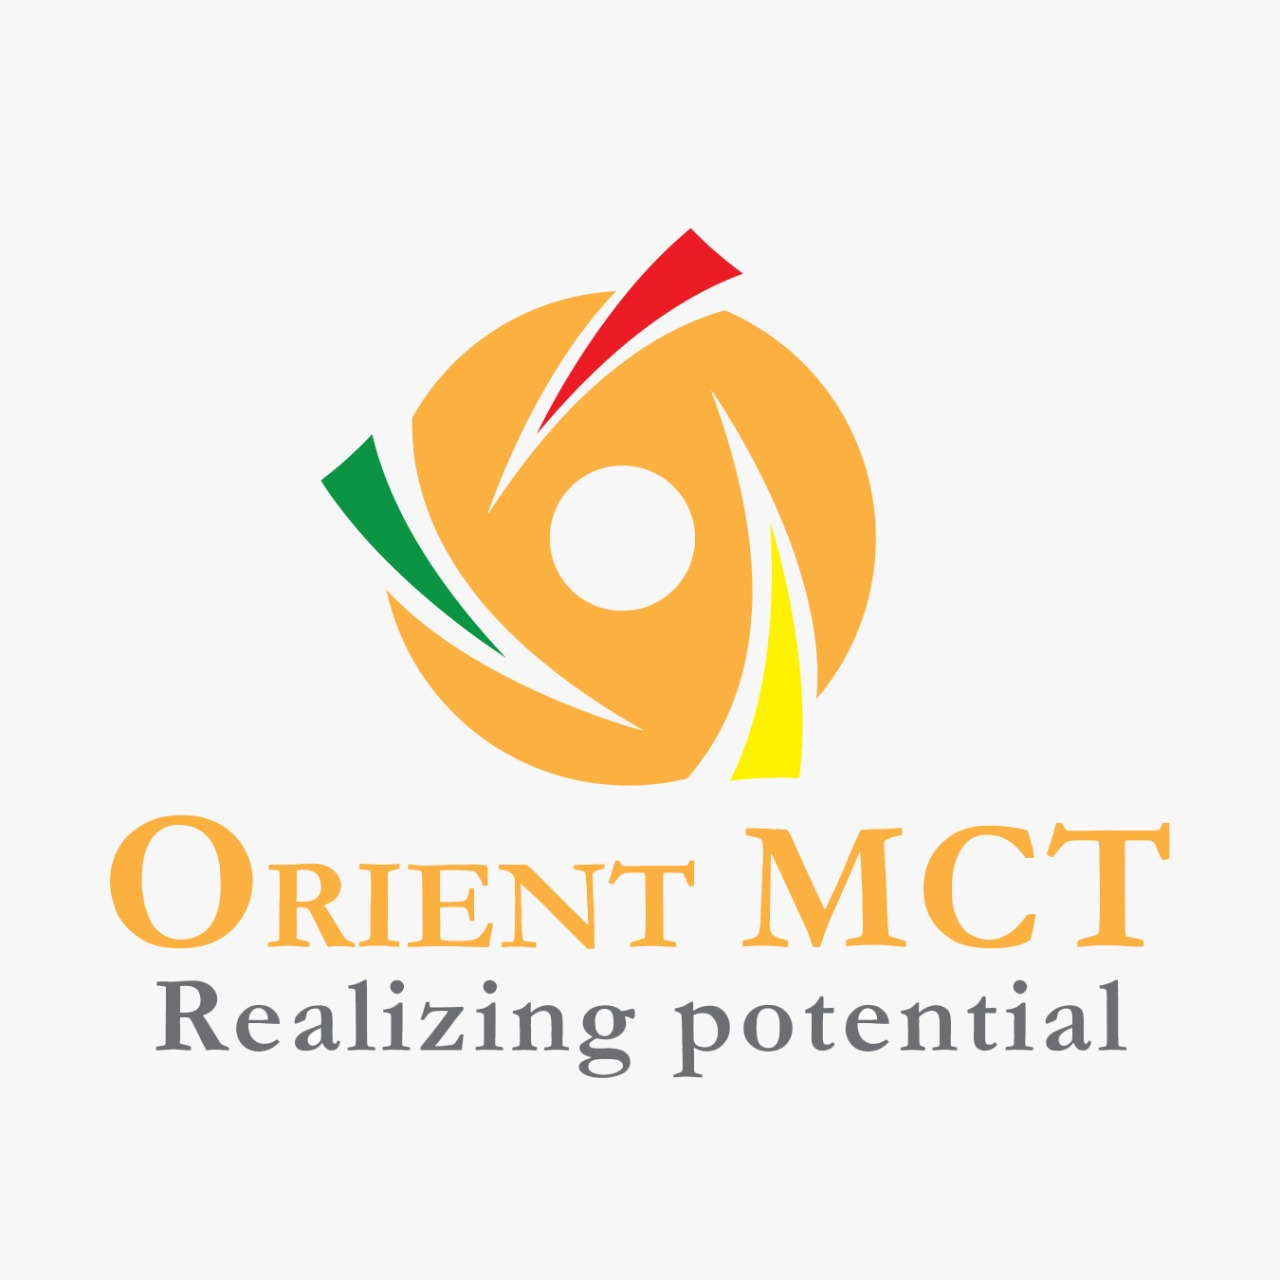 orient mct - management consulting & training